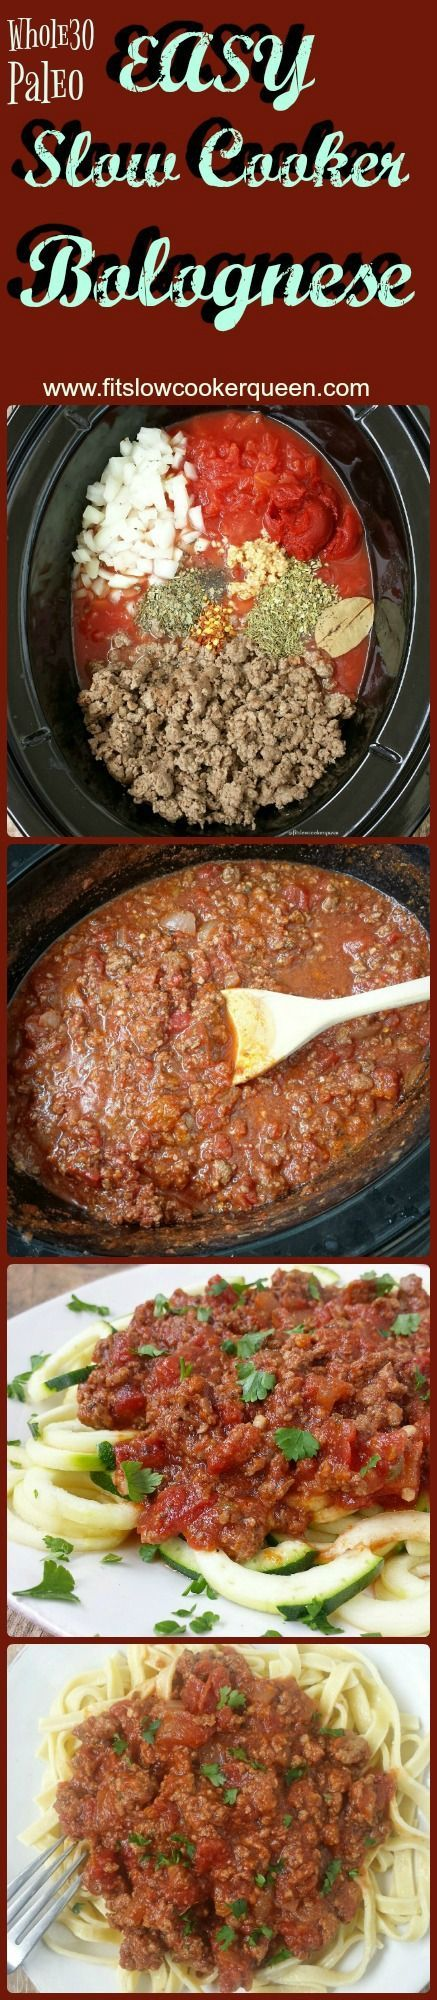 Slow Cooker / Crockpot Whole30 & Paleo - Bolognese is a great recipe for the slow cooker. This healthy meat-based sauce slow cooks for hours producing a whole 30 and paleo versatile sauce